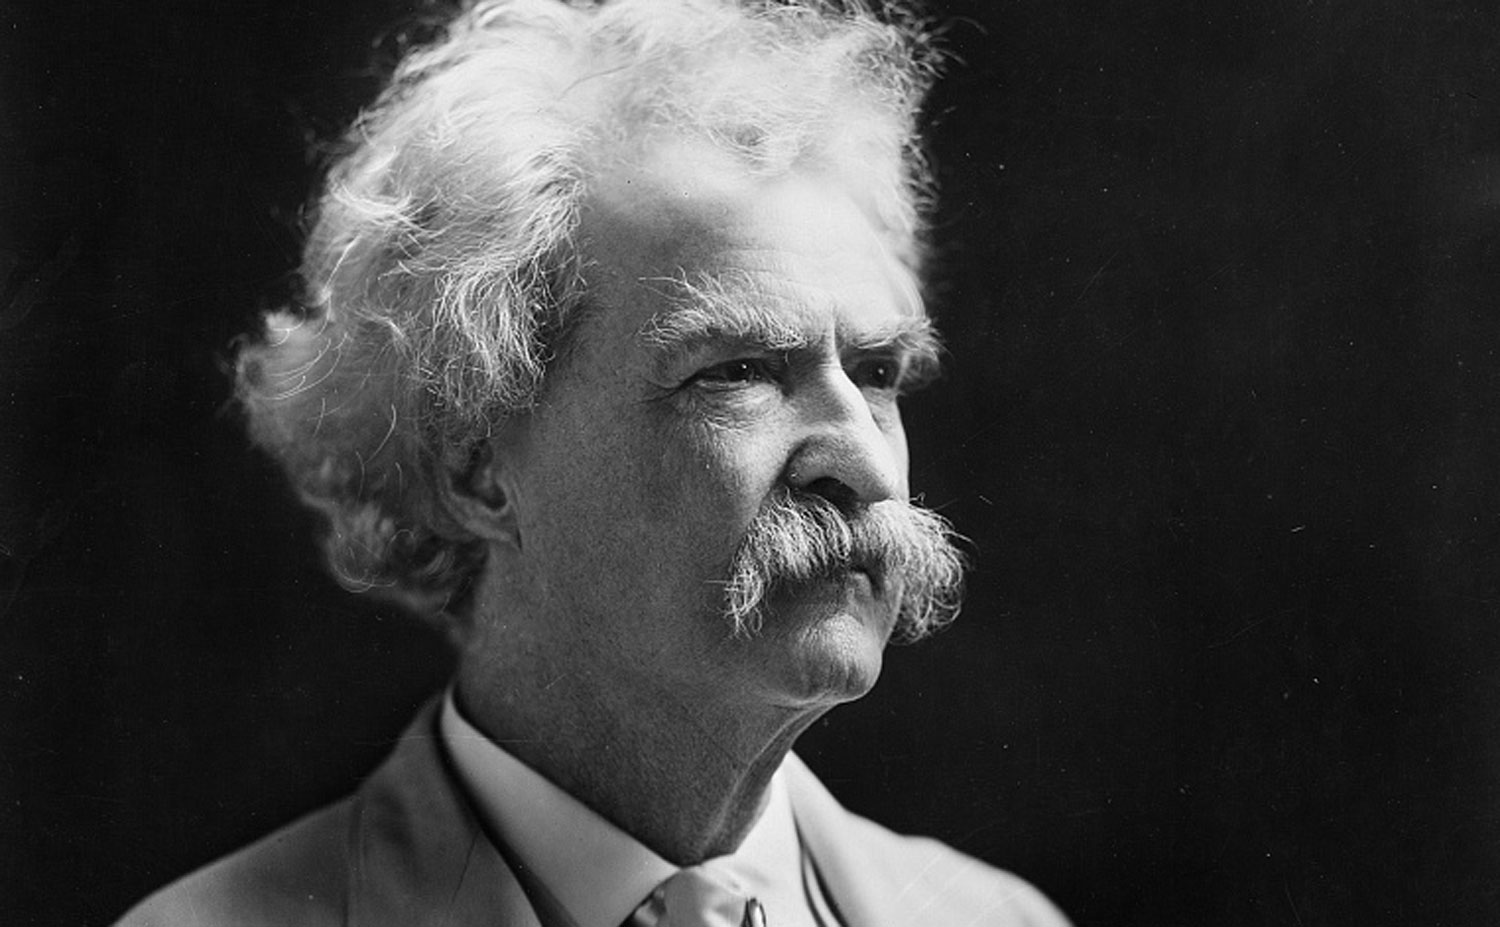 Samuel Clemens poet author person civilization darkness ollamh